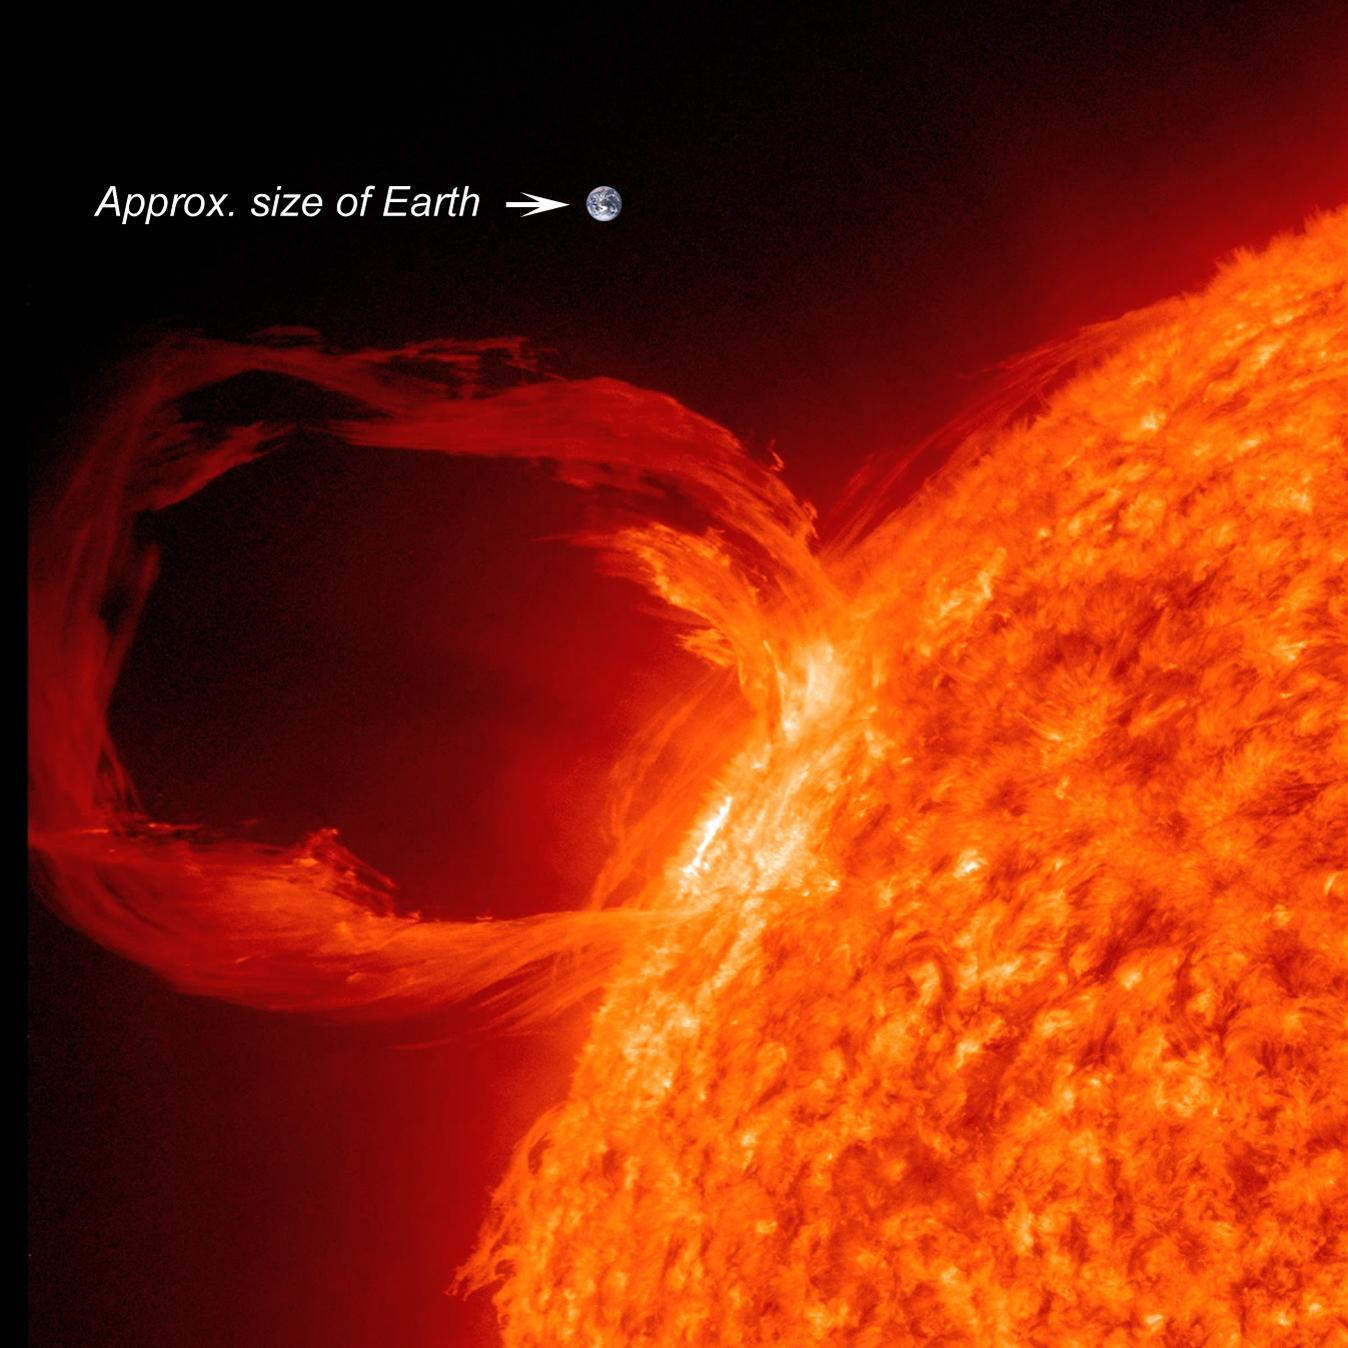 Gigantic horseshoe shaped stream of glowing gas coming from sun's surface with very tiny Earth for perspective.